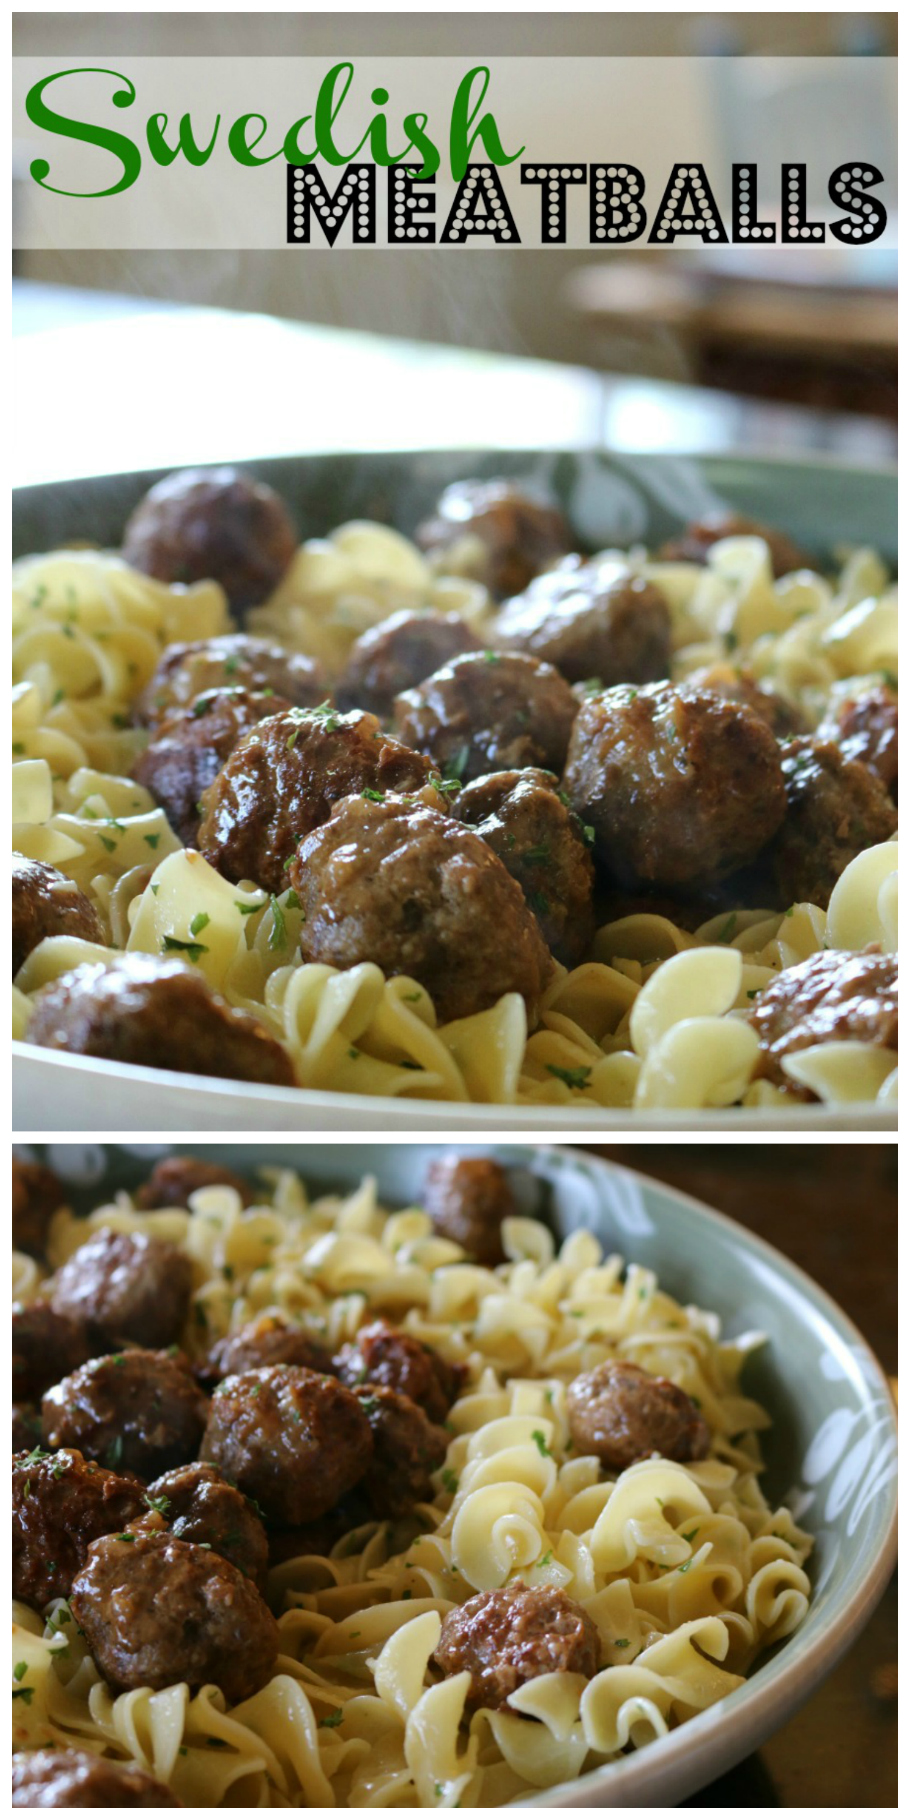 Sweedish Meatballs over Egg Noodles| CeceliasGoodStuff.com | Good Food for Good People